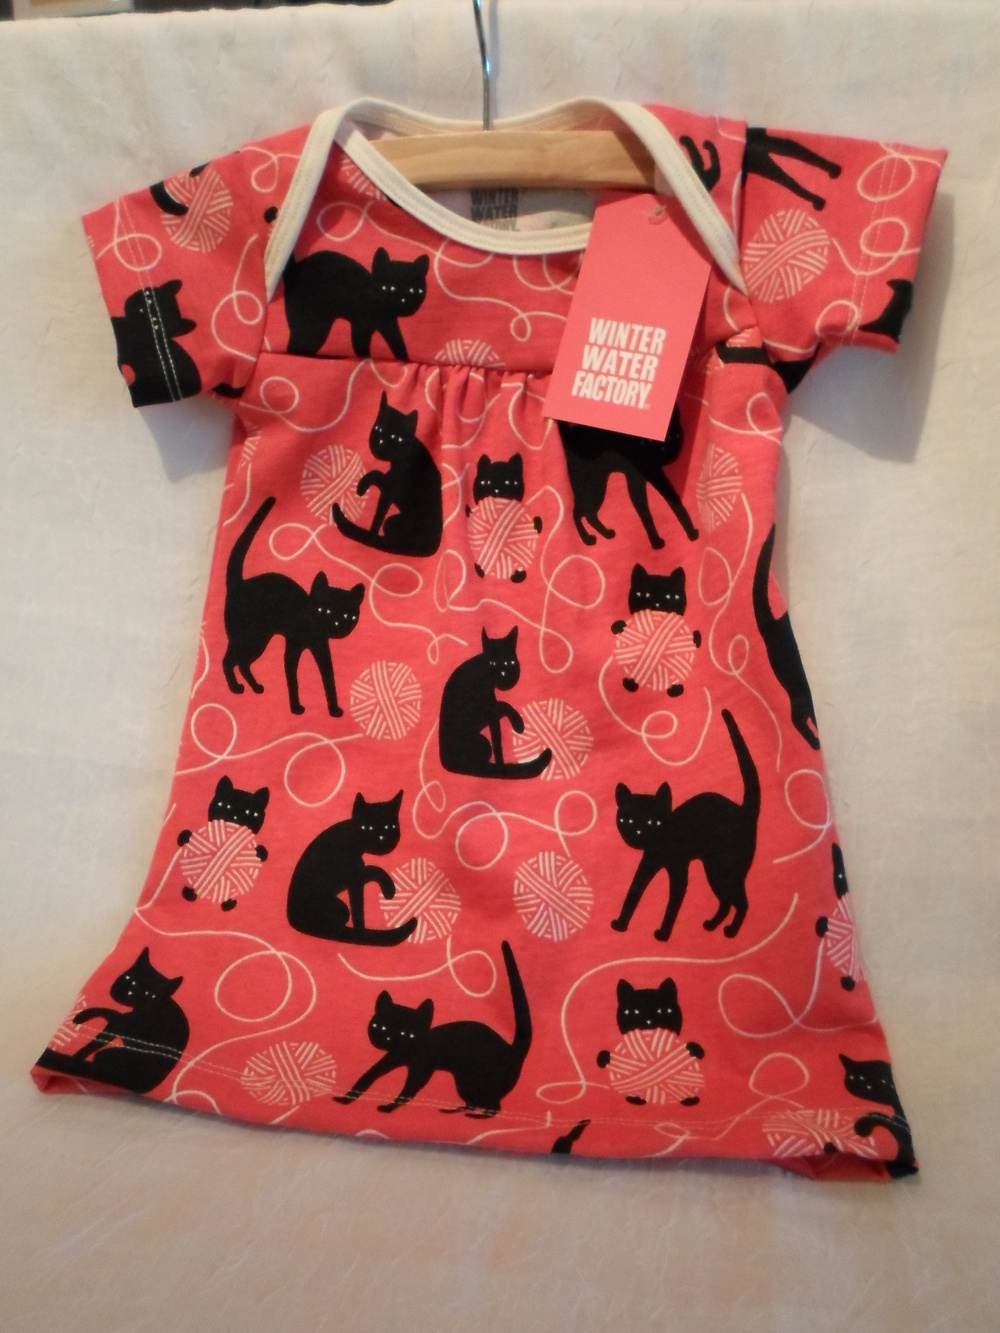 Winter Water Factory Organic Dress   in Black Kitty     size 6m    $37.95    Wants 1 - PURCHASED